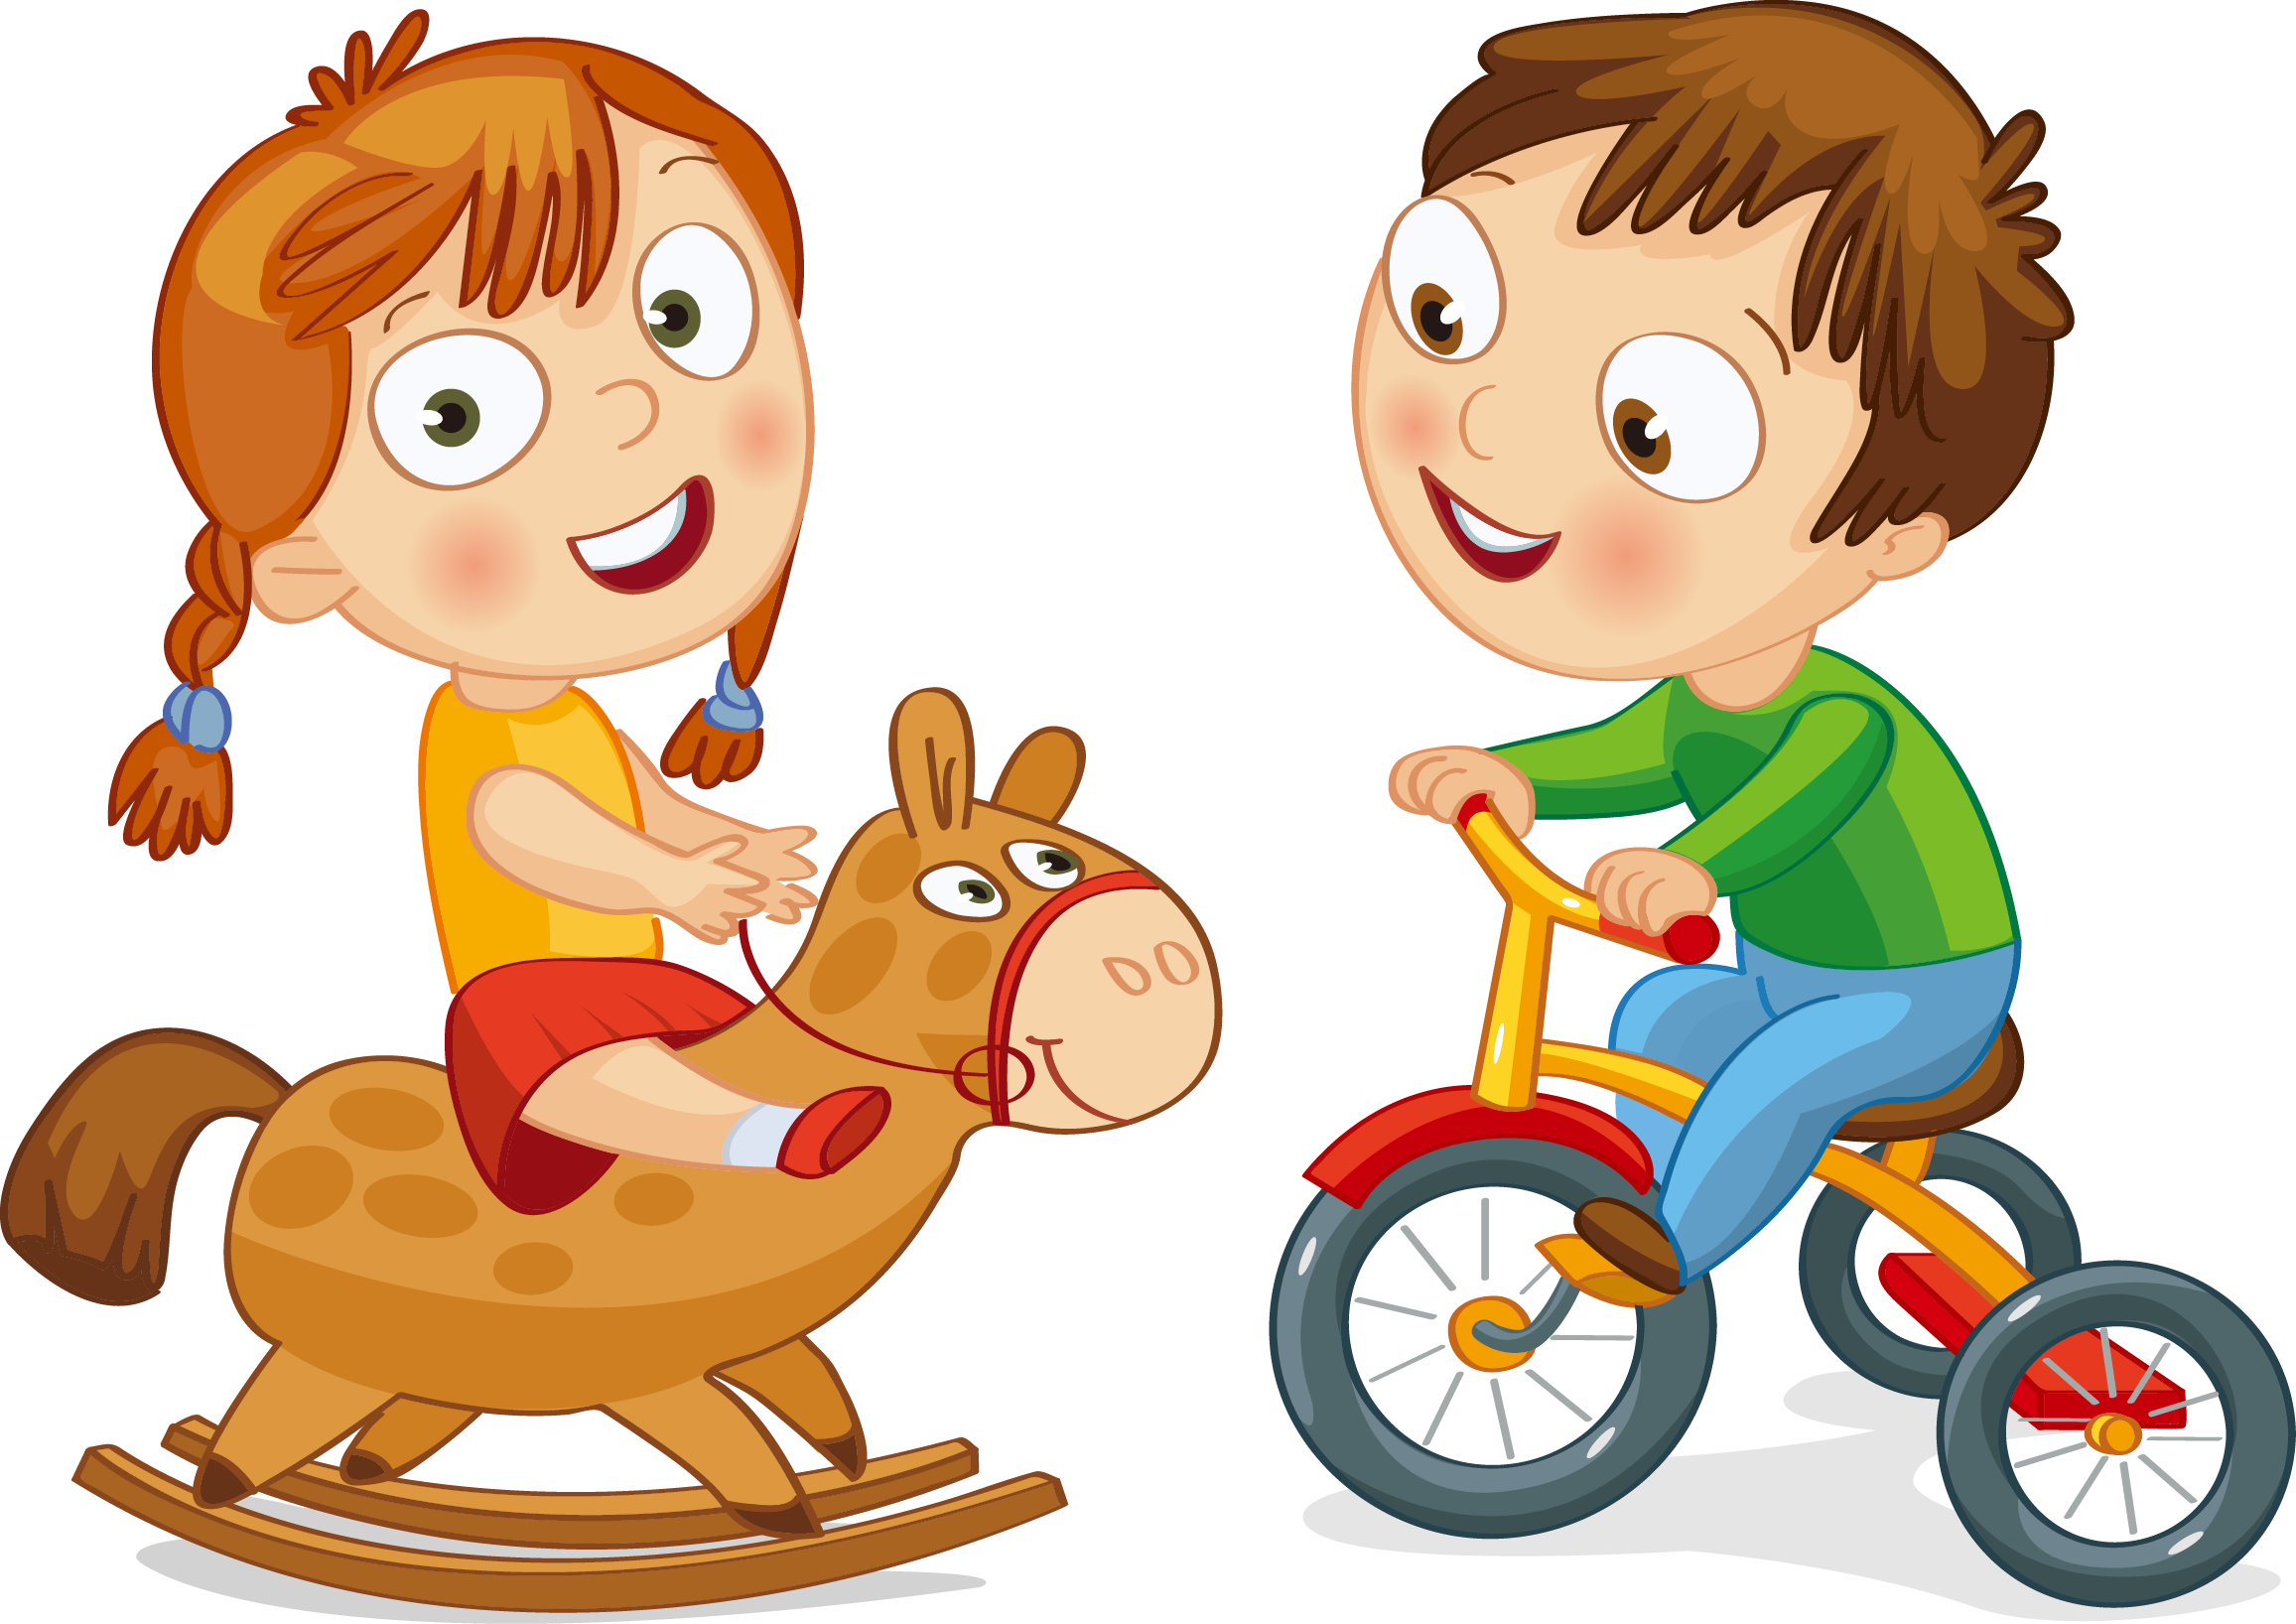 Bicycle cycling motorized tricycle. Clipart bike toddler bike